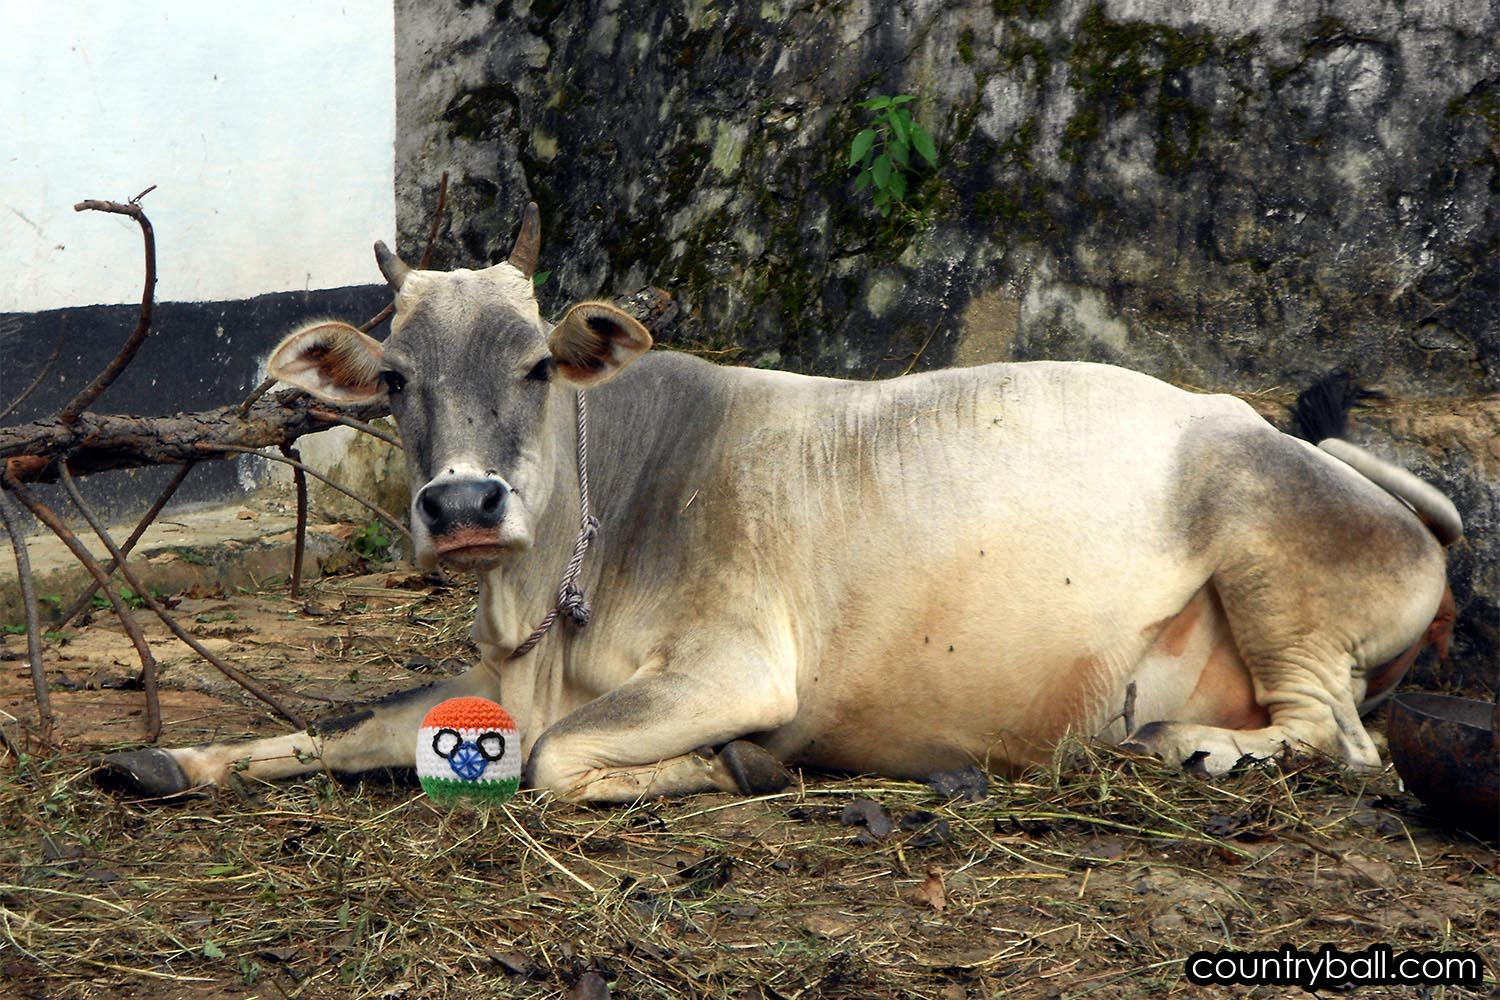 Indiaball with a Holy Cow